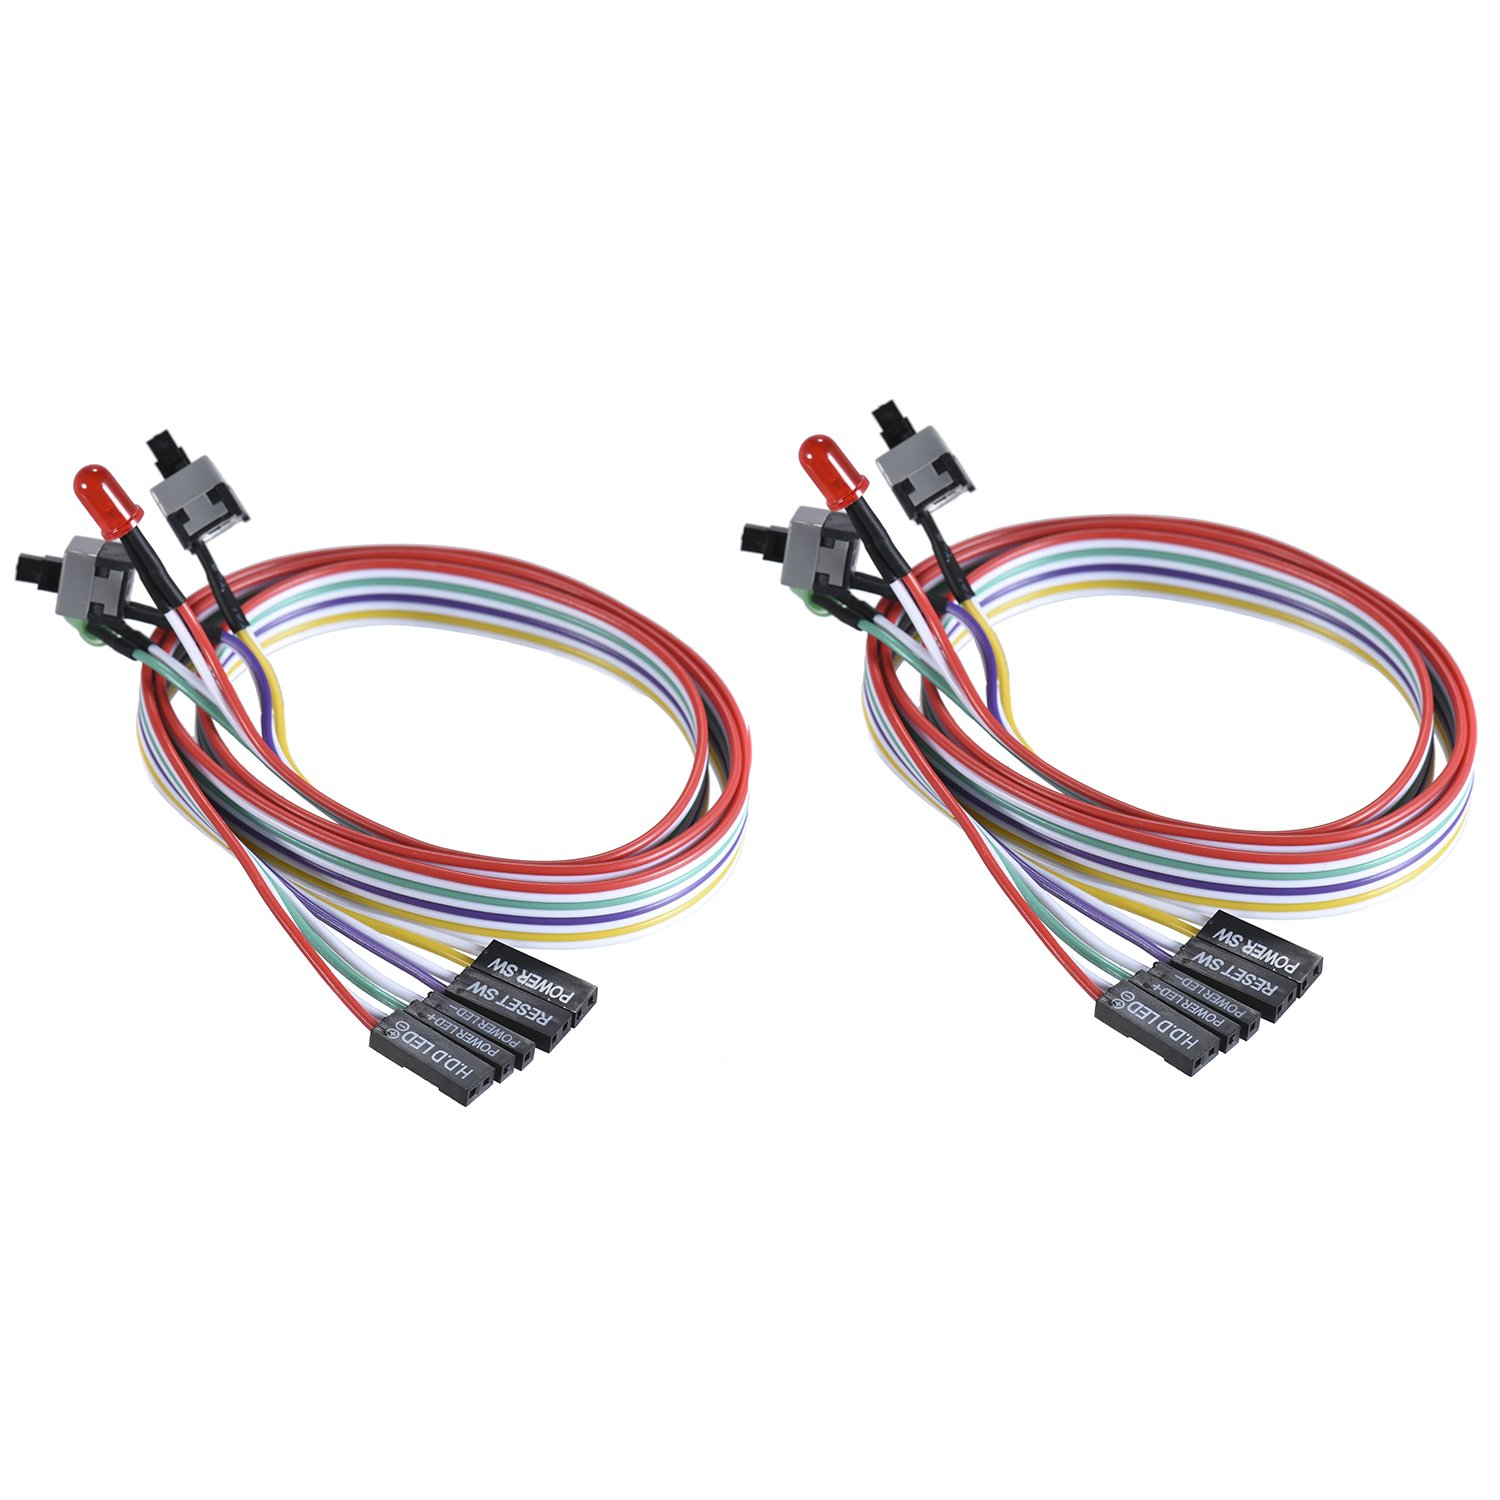 Warmstor 2-Pack Computer Case LED Light Red Green ATX Power Supply Reset HDD Switch Cable 27-inch Long ATX Case Front Bezel Wire Kit by Warmstor (Image #8)